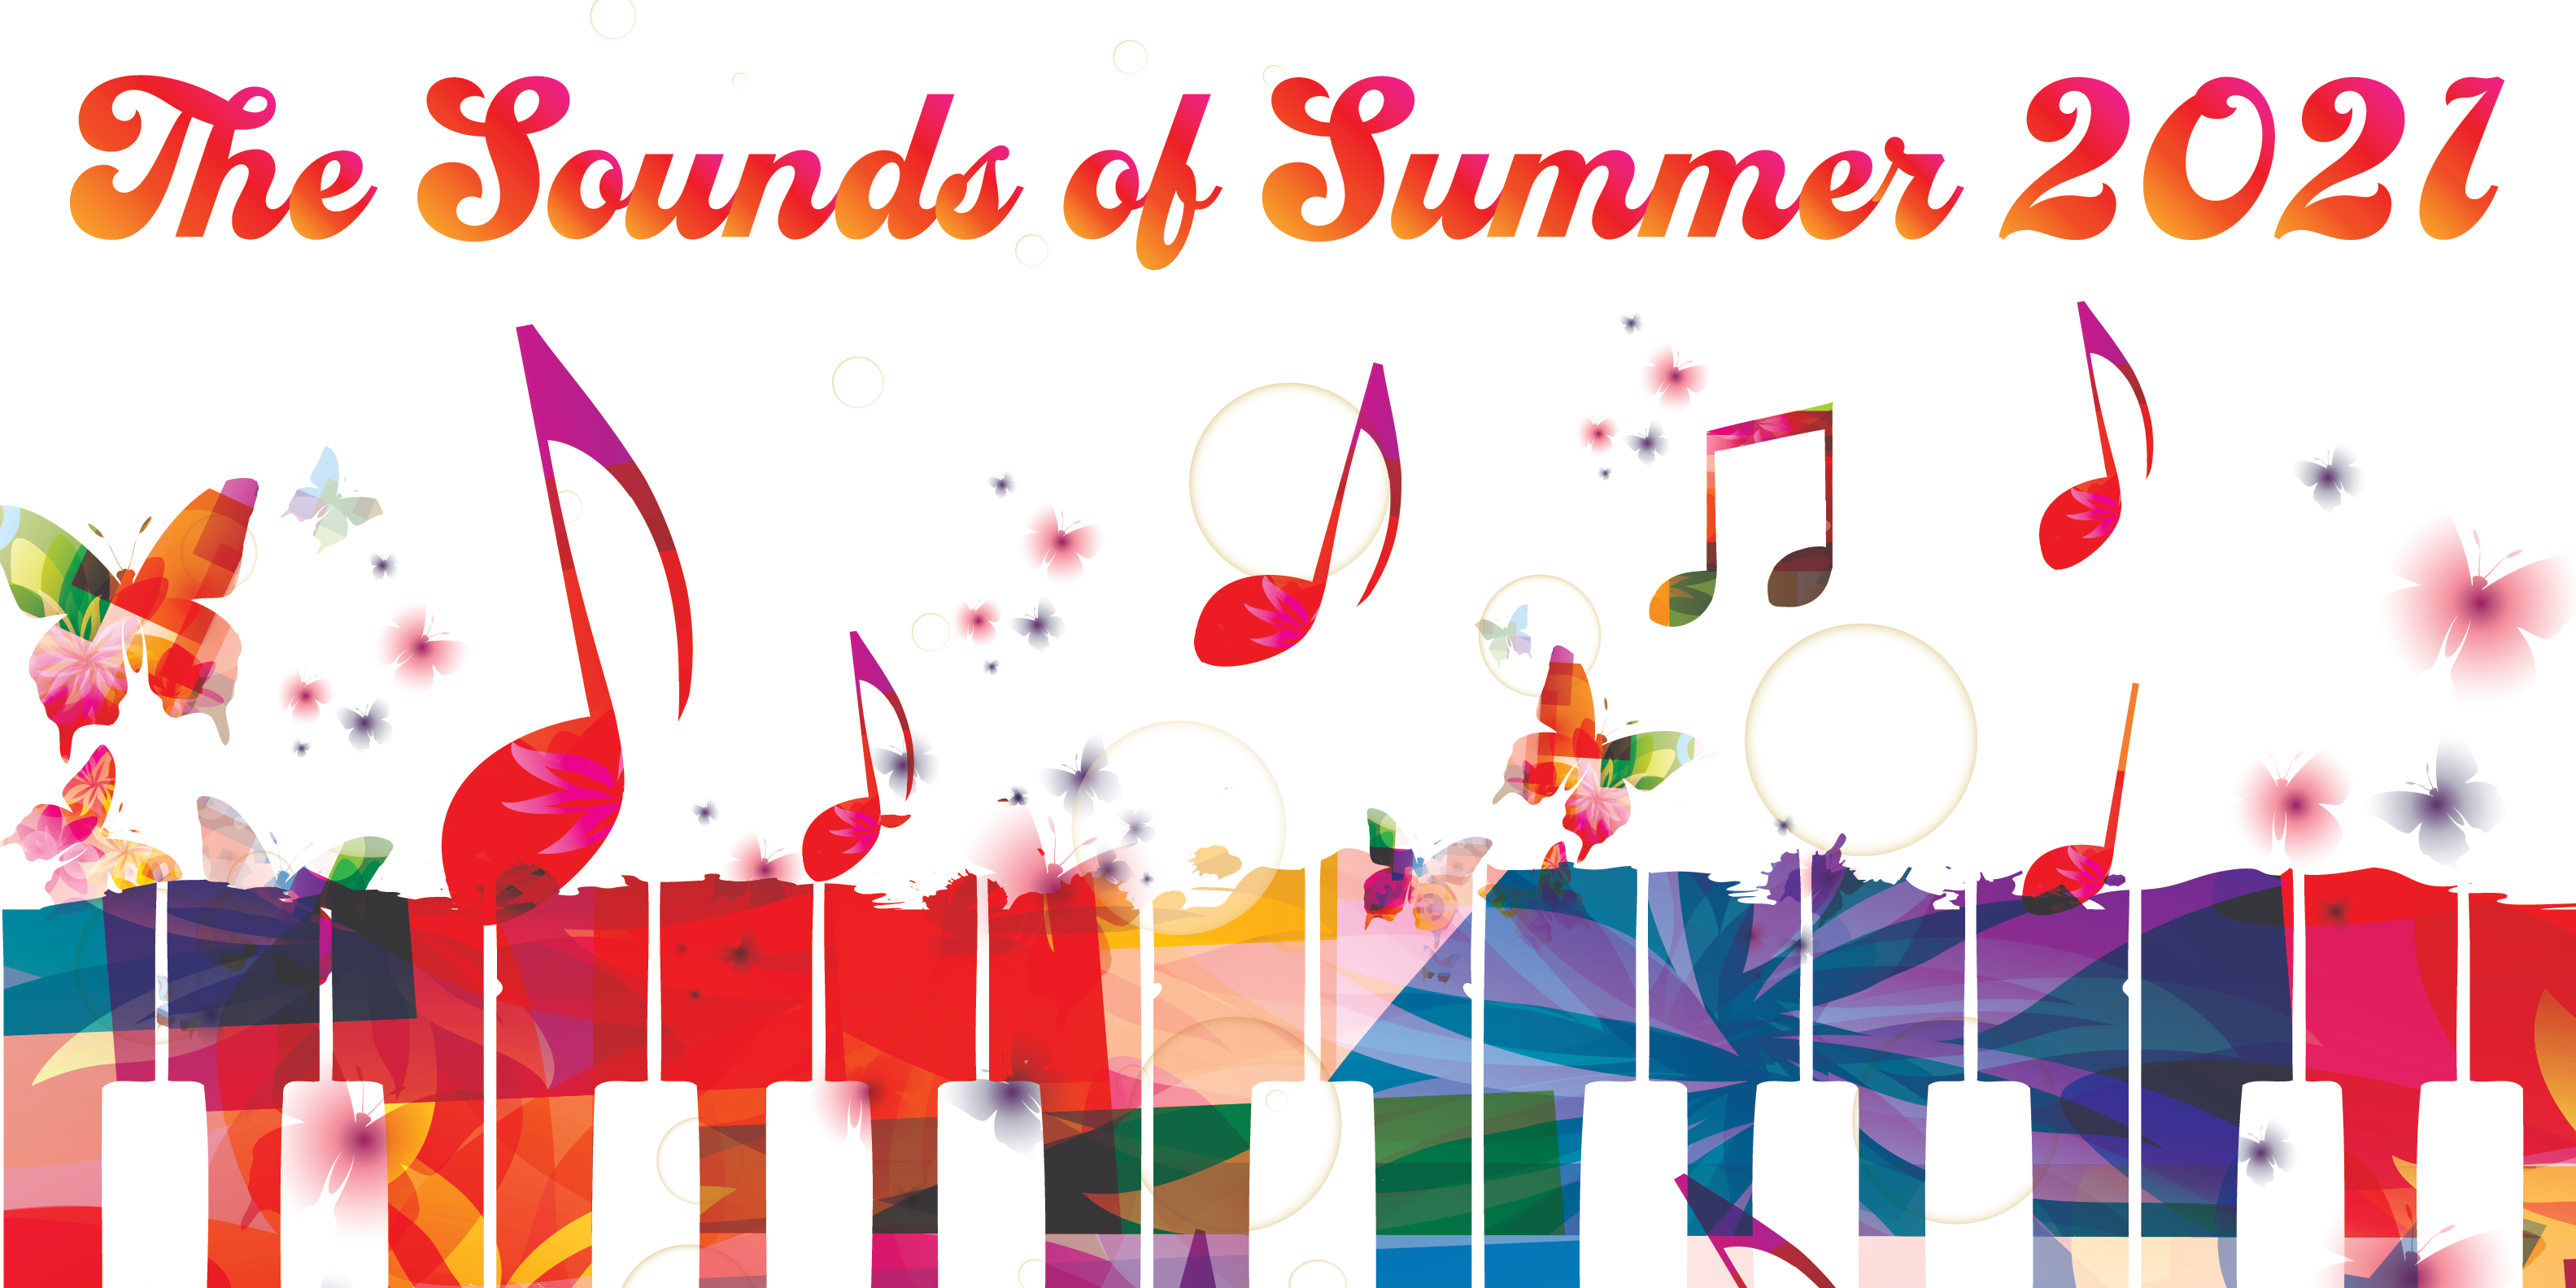 The Sounds of Summer 2021